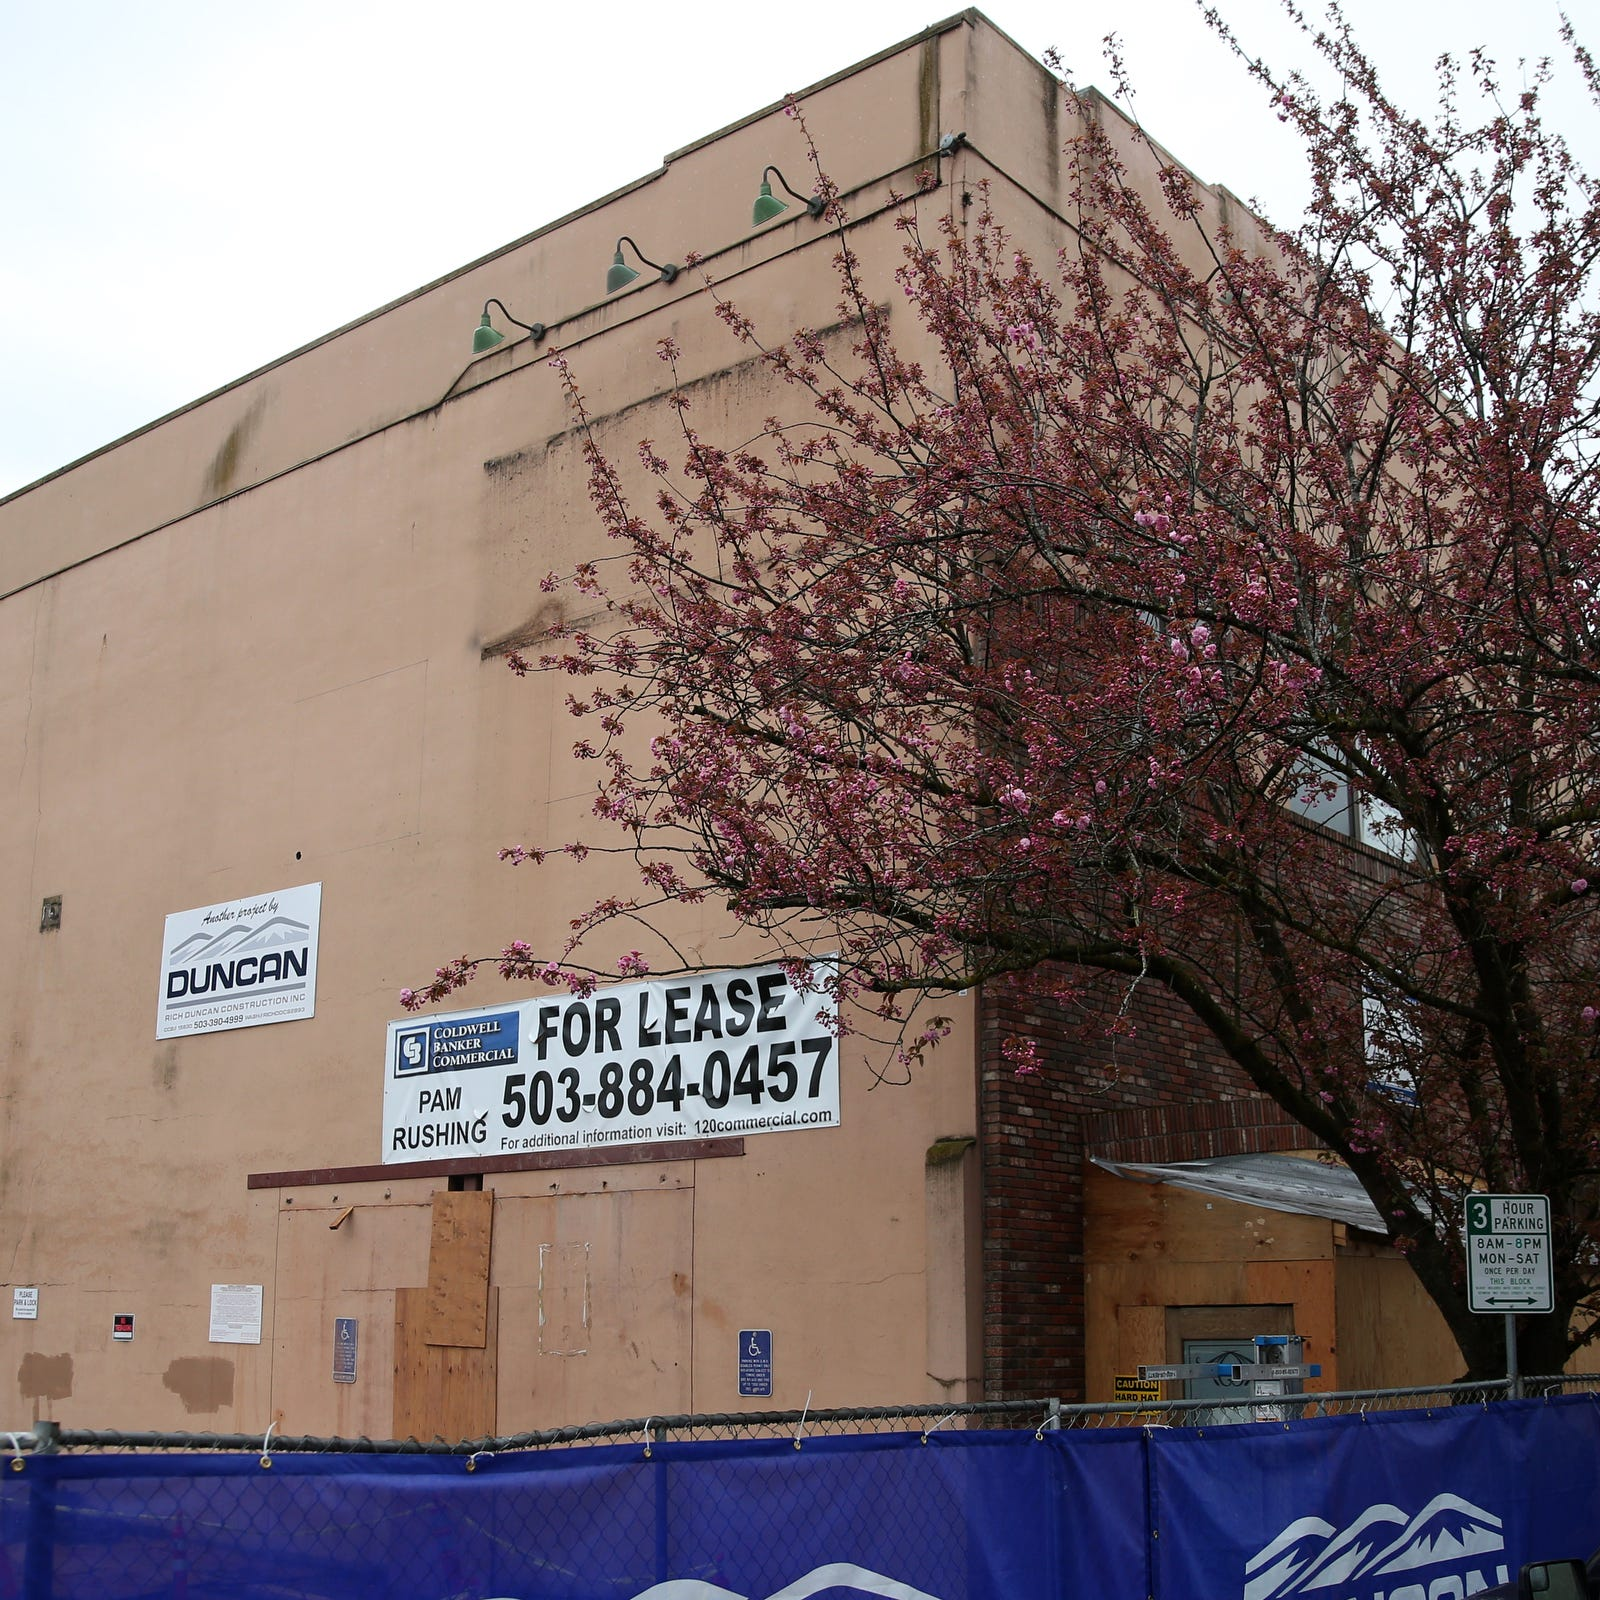 What's happening at the former Old Spaghetti Warehouse location in Salem?